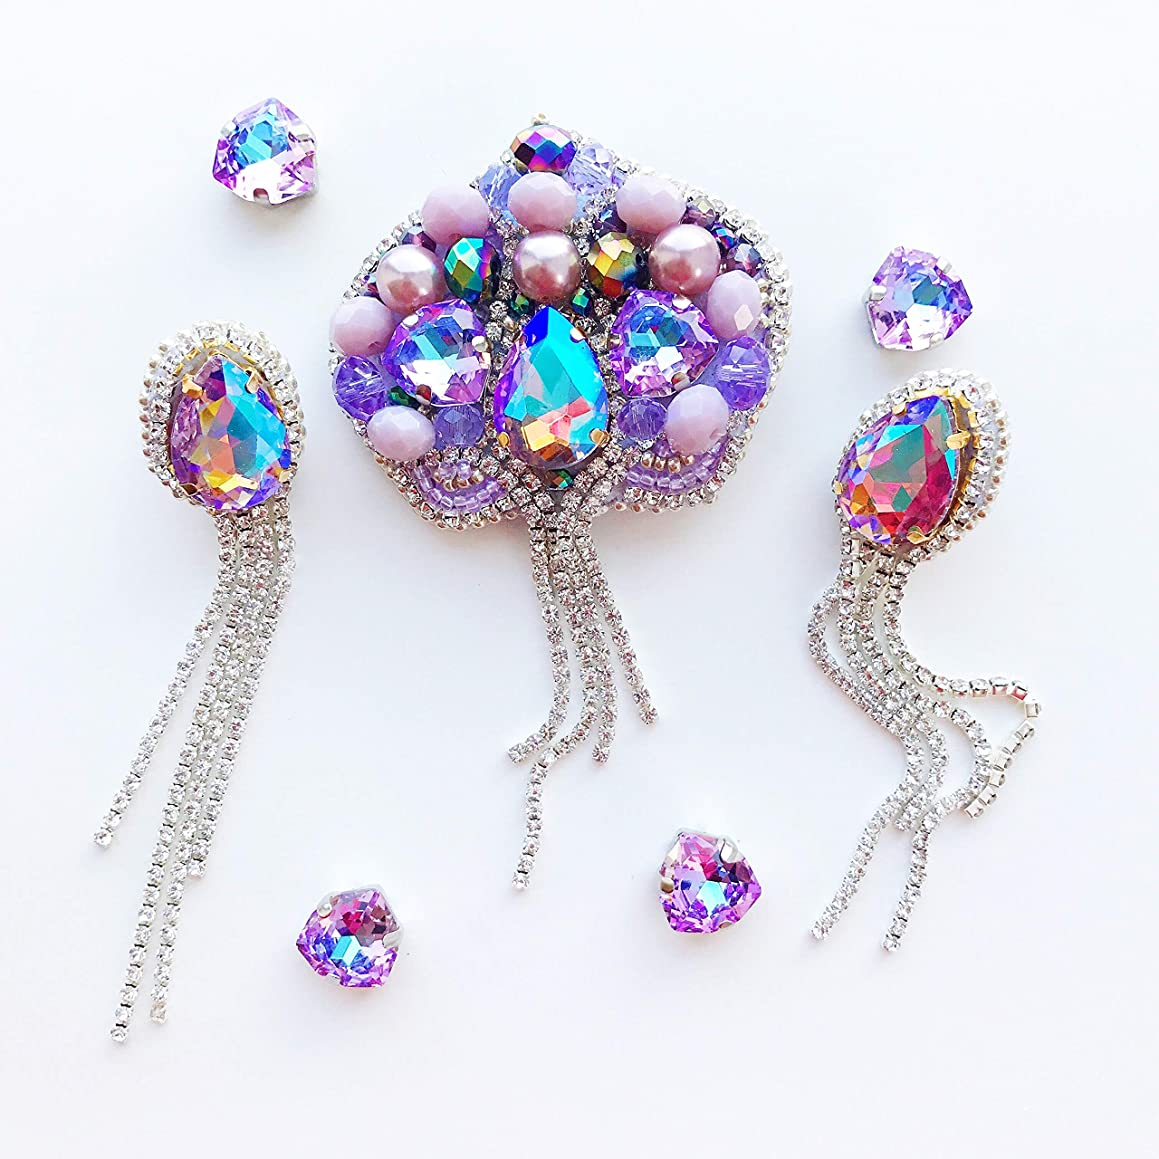 Handmade Purple Crystal Brooch Violet Chandlier Earrings Set Flower Embroidered Pearls Pin Rhinestone Orchid Fashion Jewelry Beaded Accessory Gift for Herb Boho Chic Style